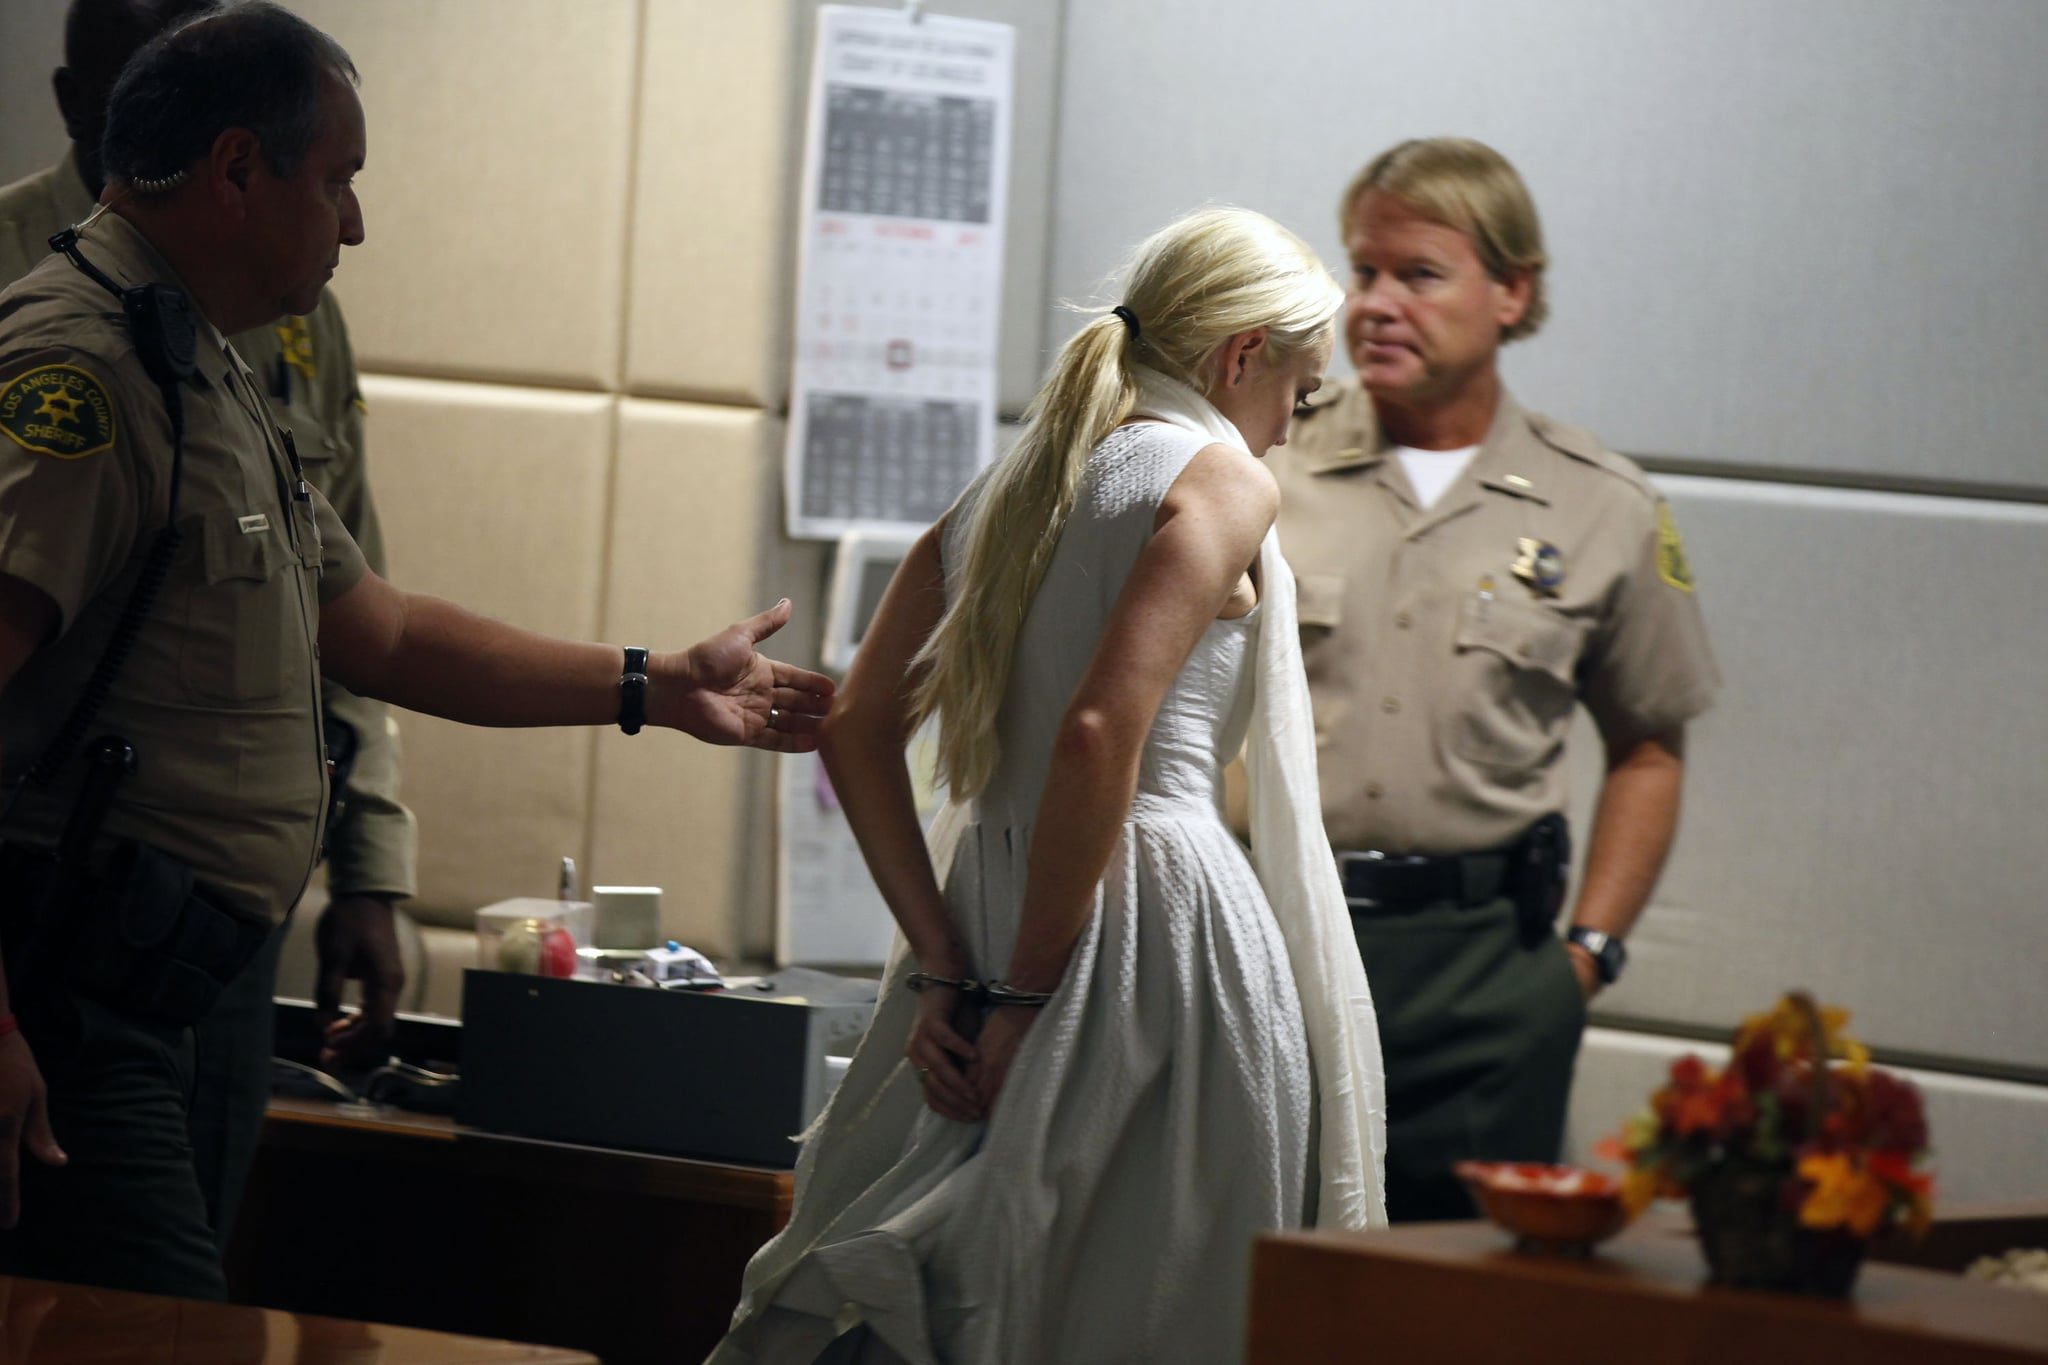 Lindsay Lohan was escorted out of an LA courthouse in handcuffs.